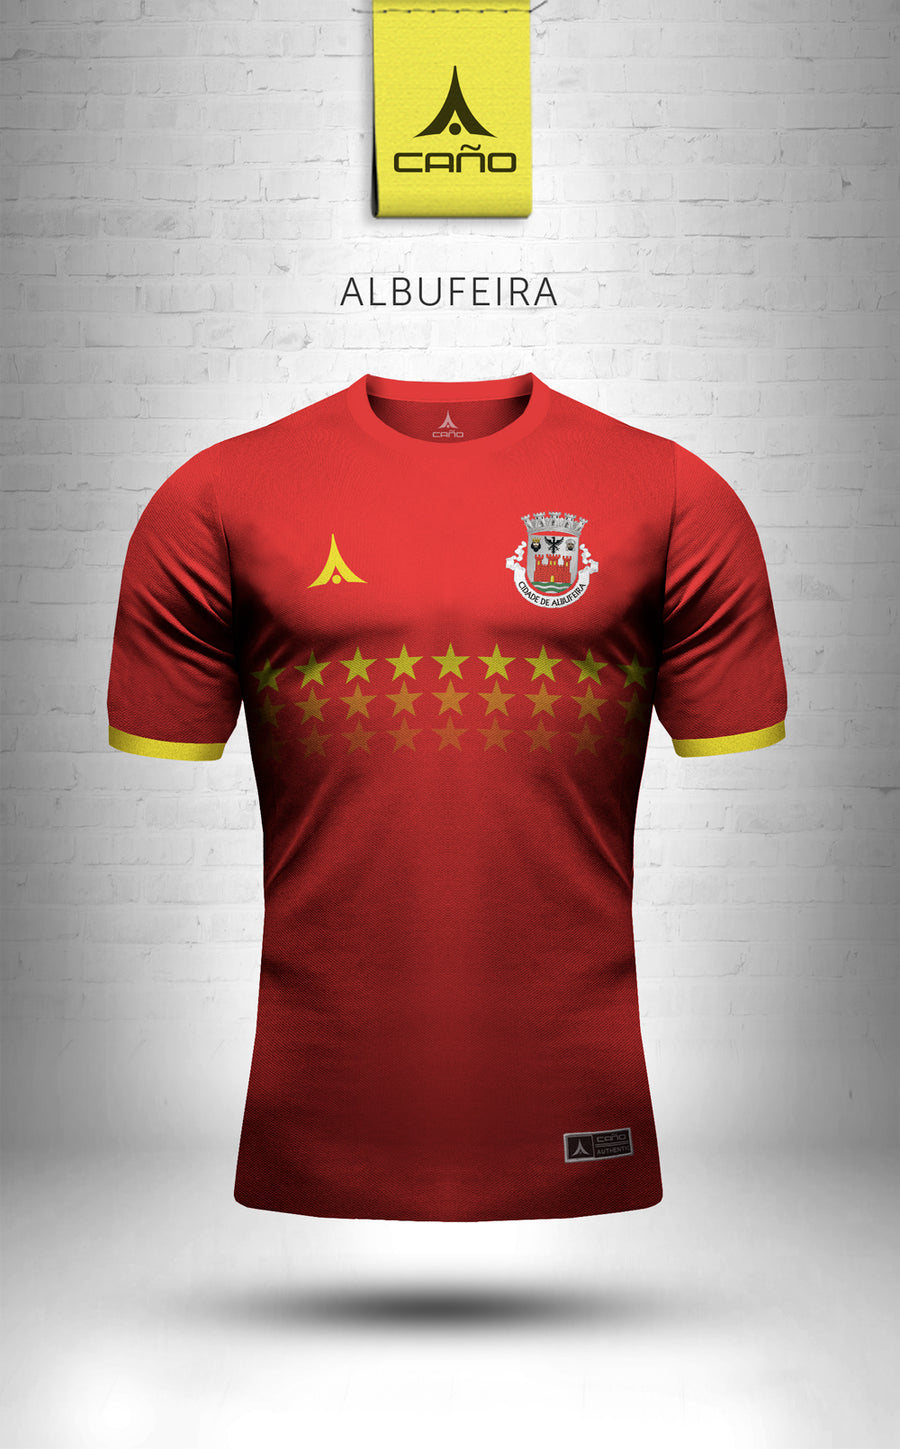 Albufeira in red/gold